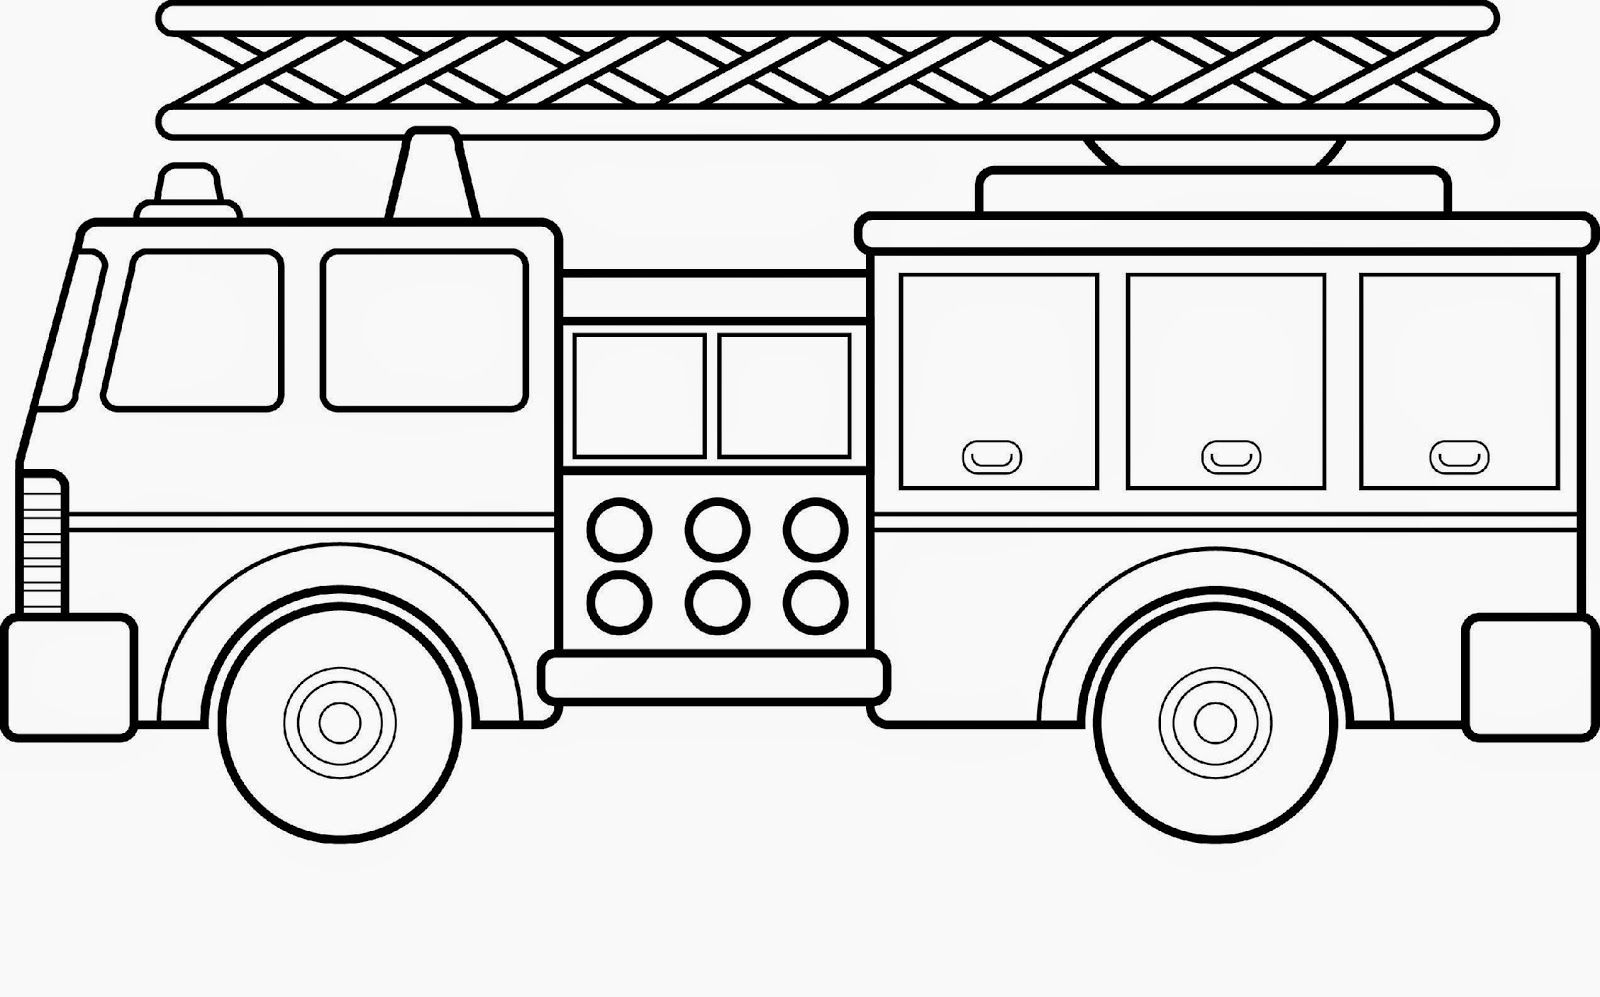 Free Printable Fire Truck Coloring Pages For Kids Jpg 1 600 997 Pixels Monster Truck Coloring Pages Cars Coloring Pages Firetruck Coloring Page